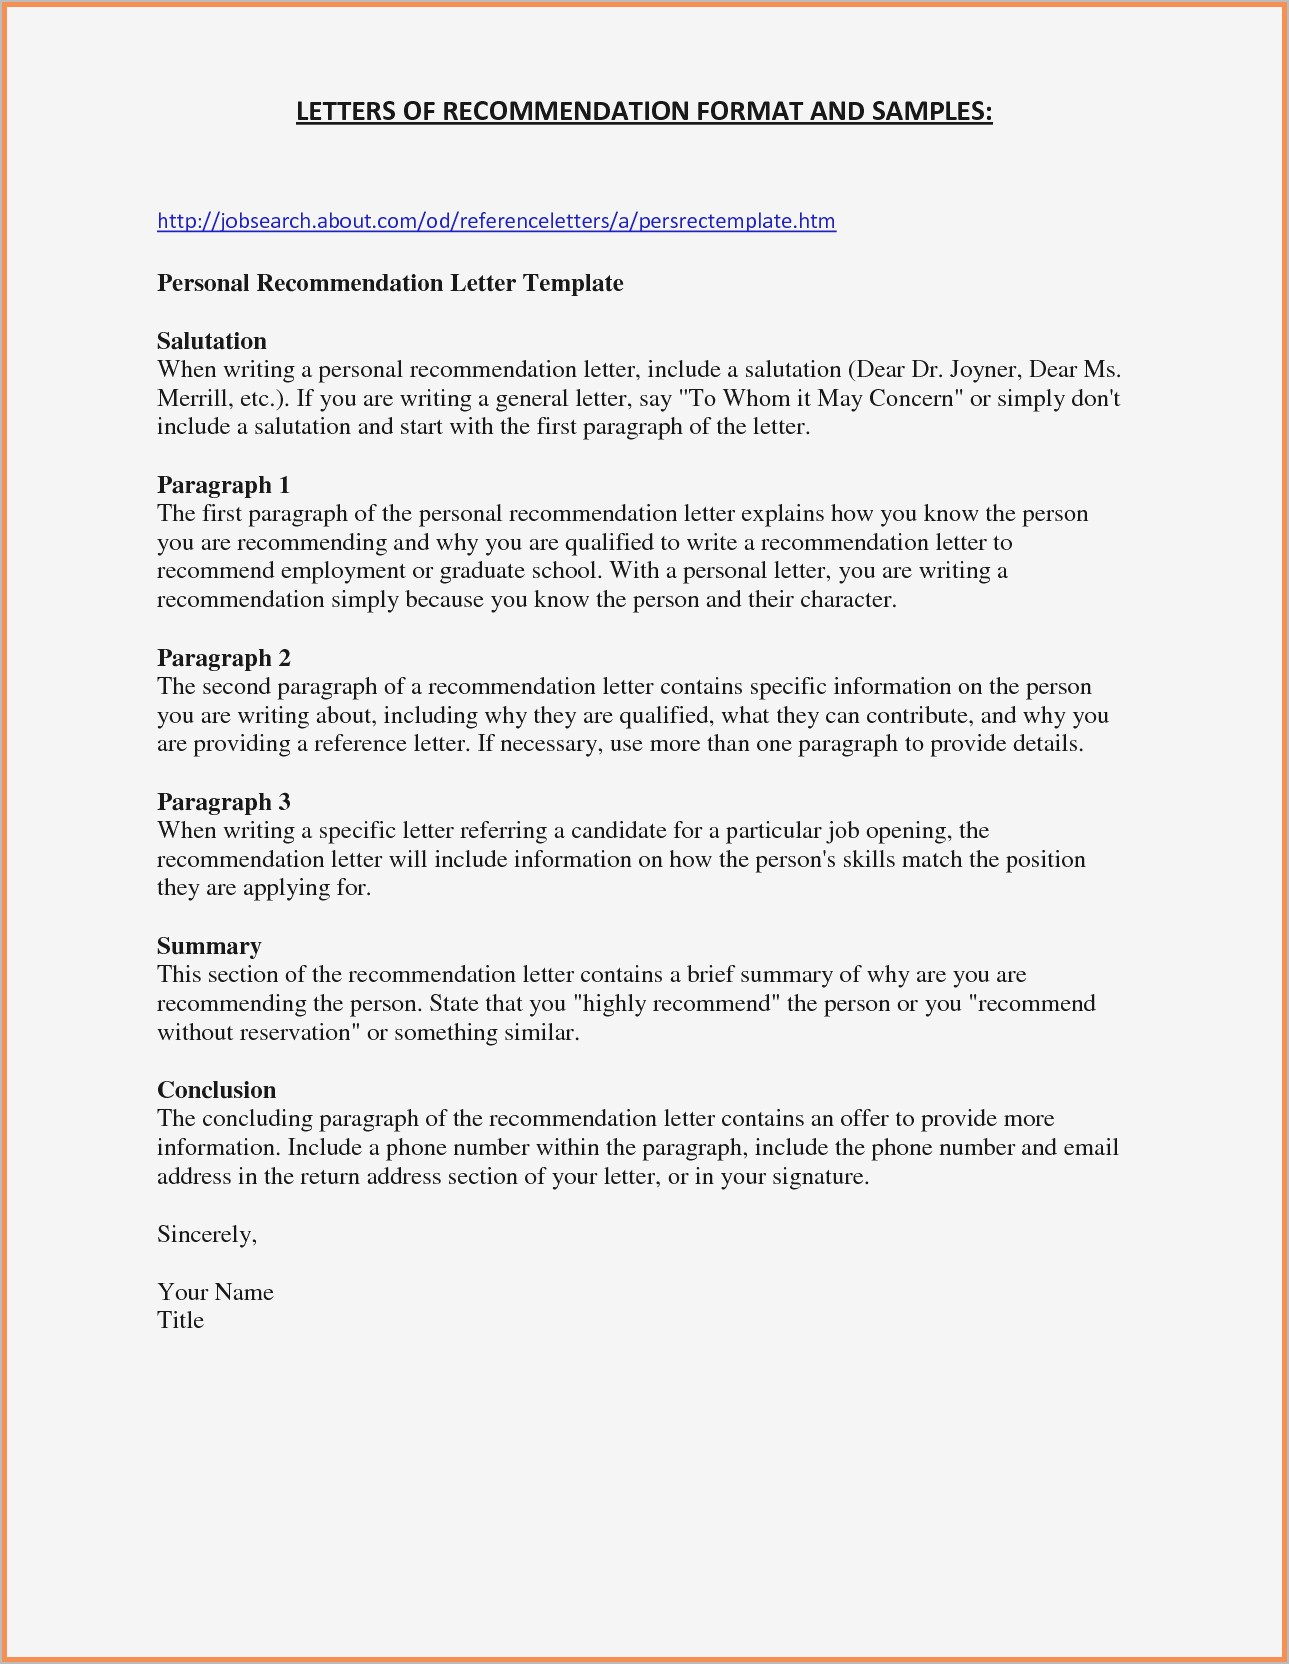 Letter to Seller From Buyer Template - Free Letter Re Mendation Template Pdf format